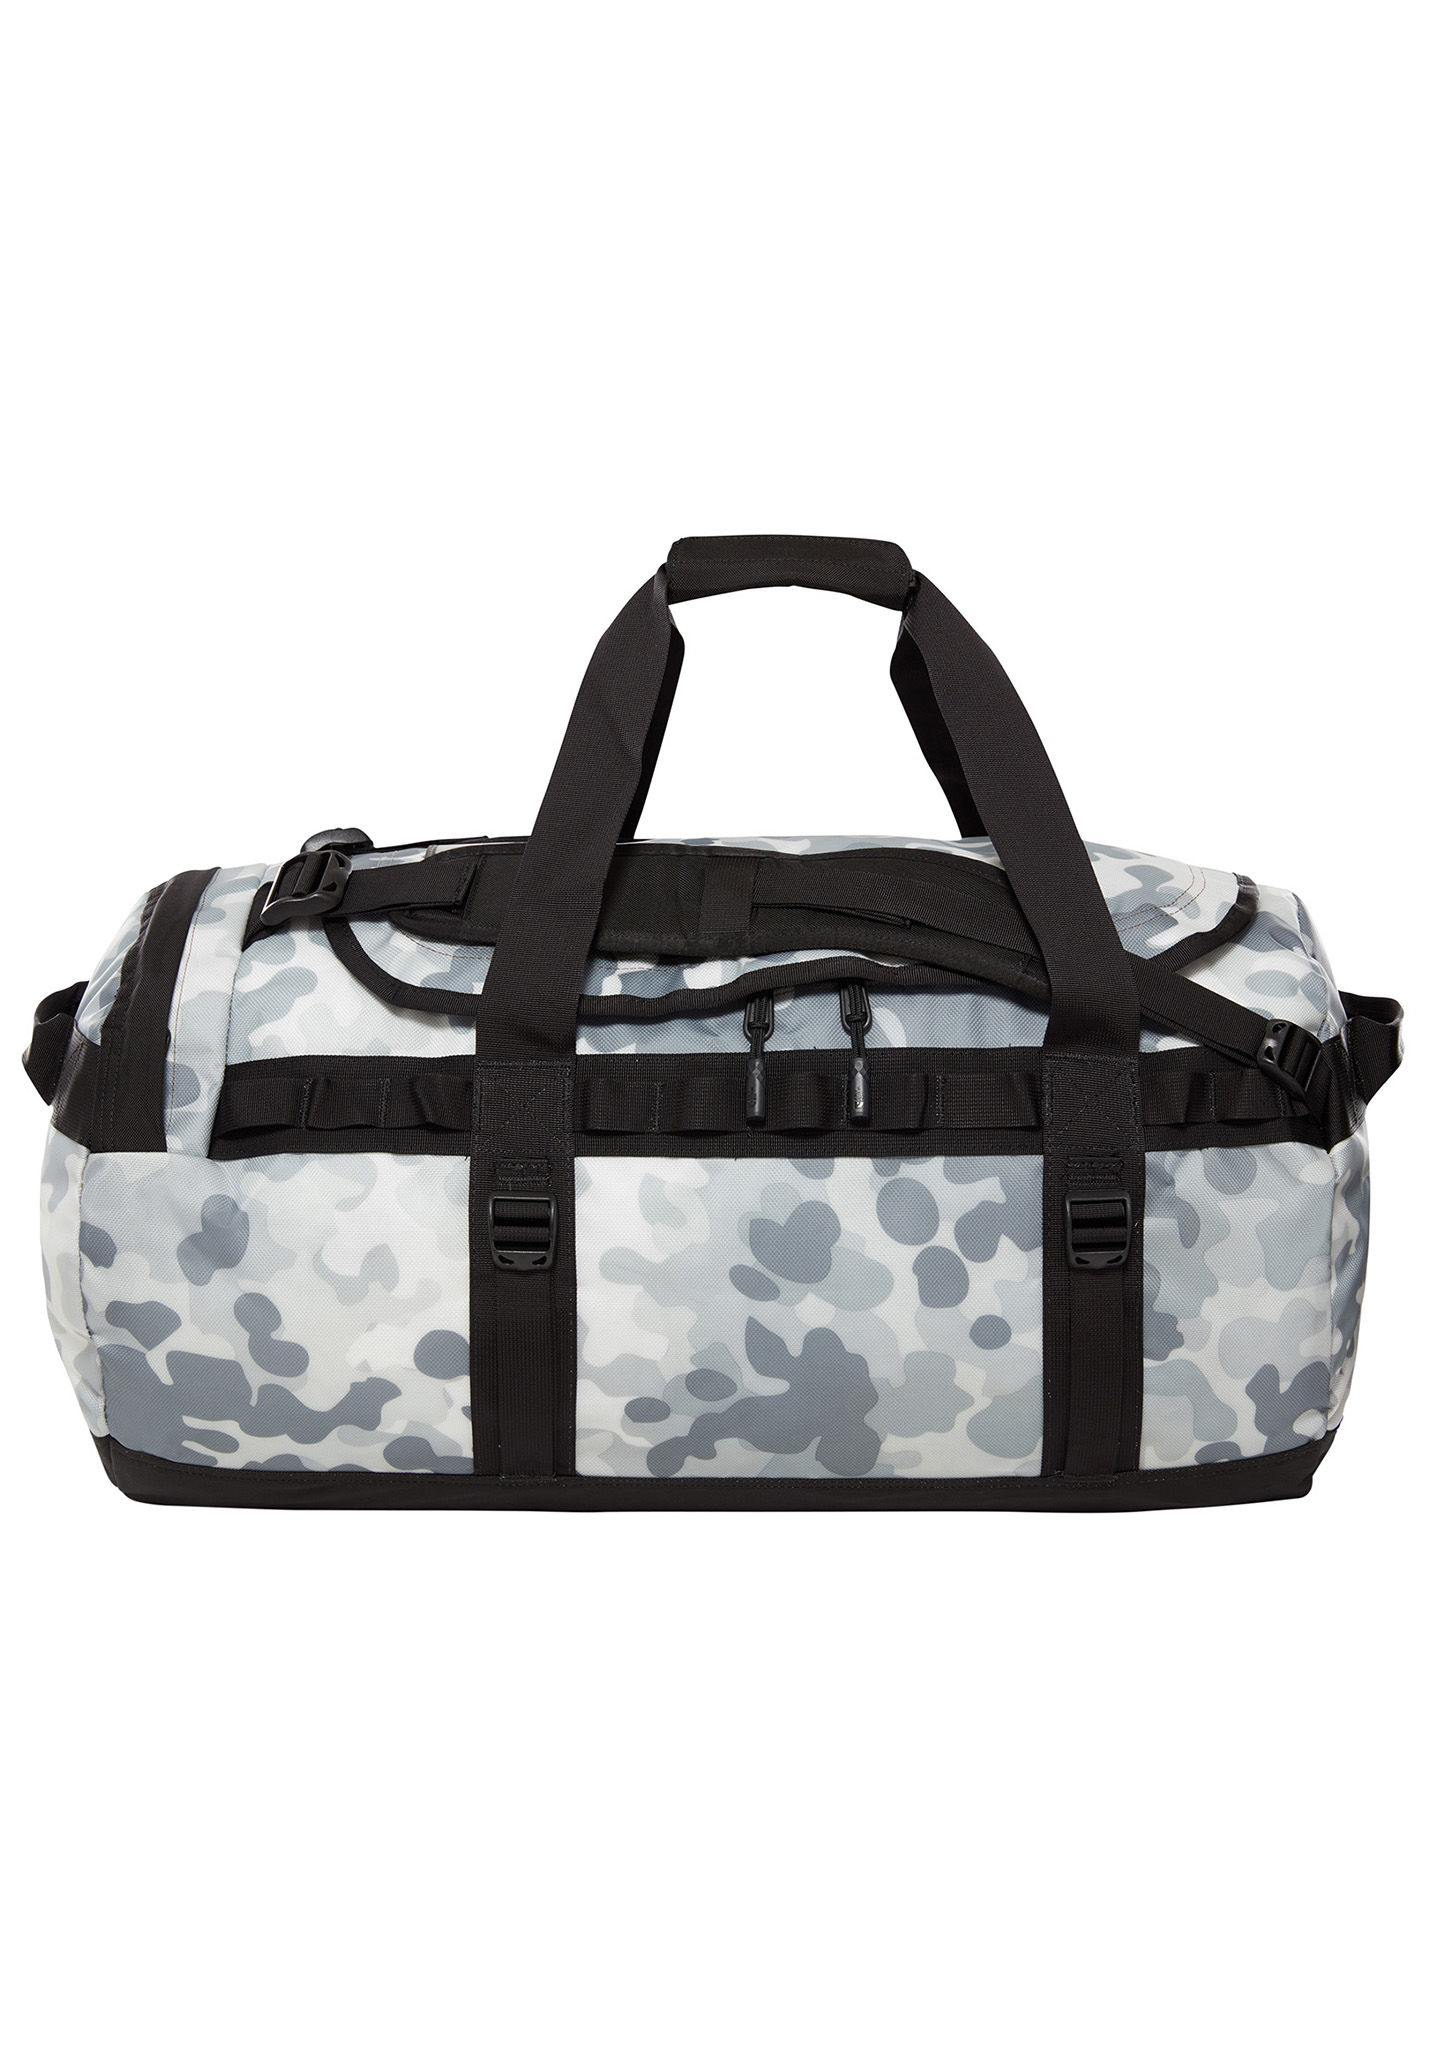 promo code 7f8e0 94135 THE NORTH FACE Base Camp M - Tasche - Camouflage